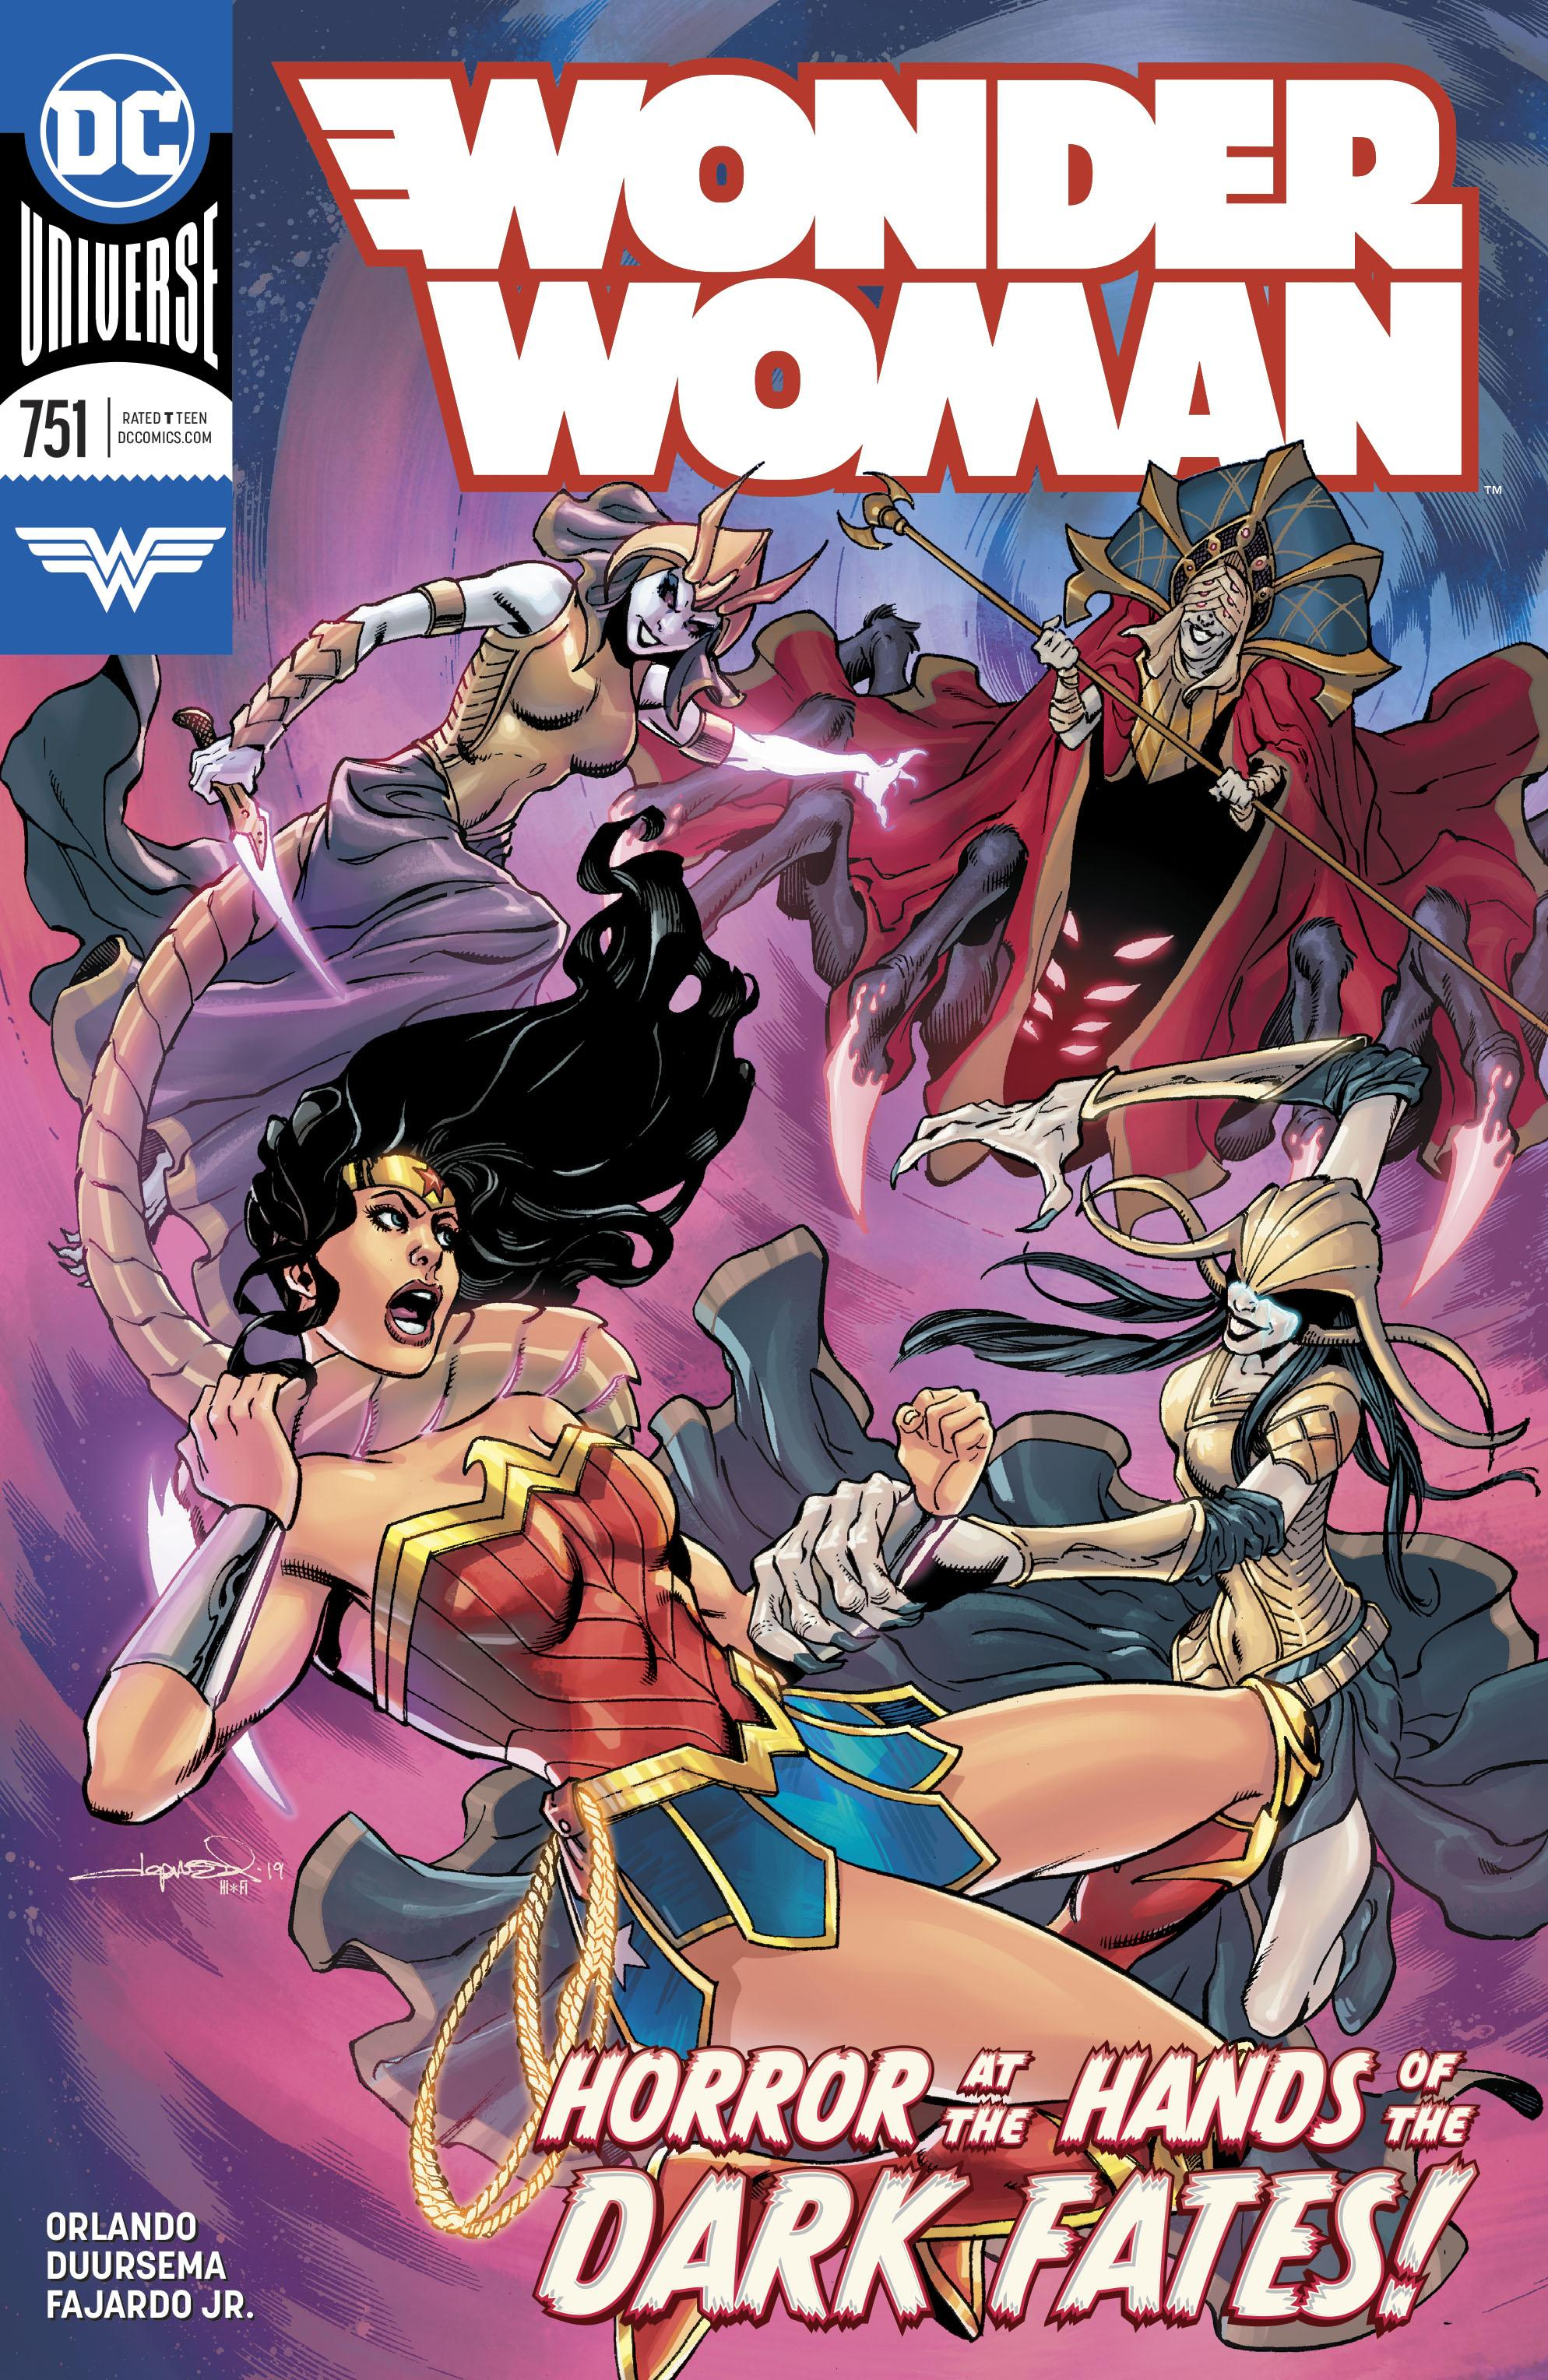 Wonder Woman Vol. 1 #751